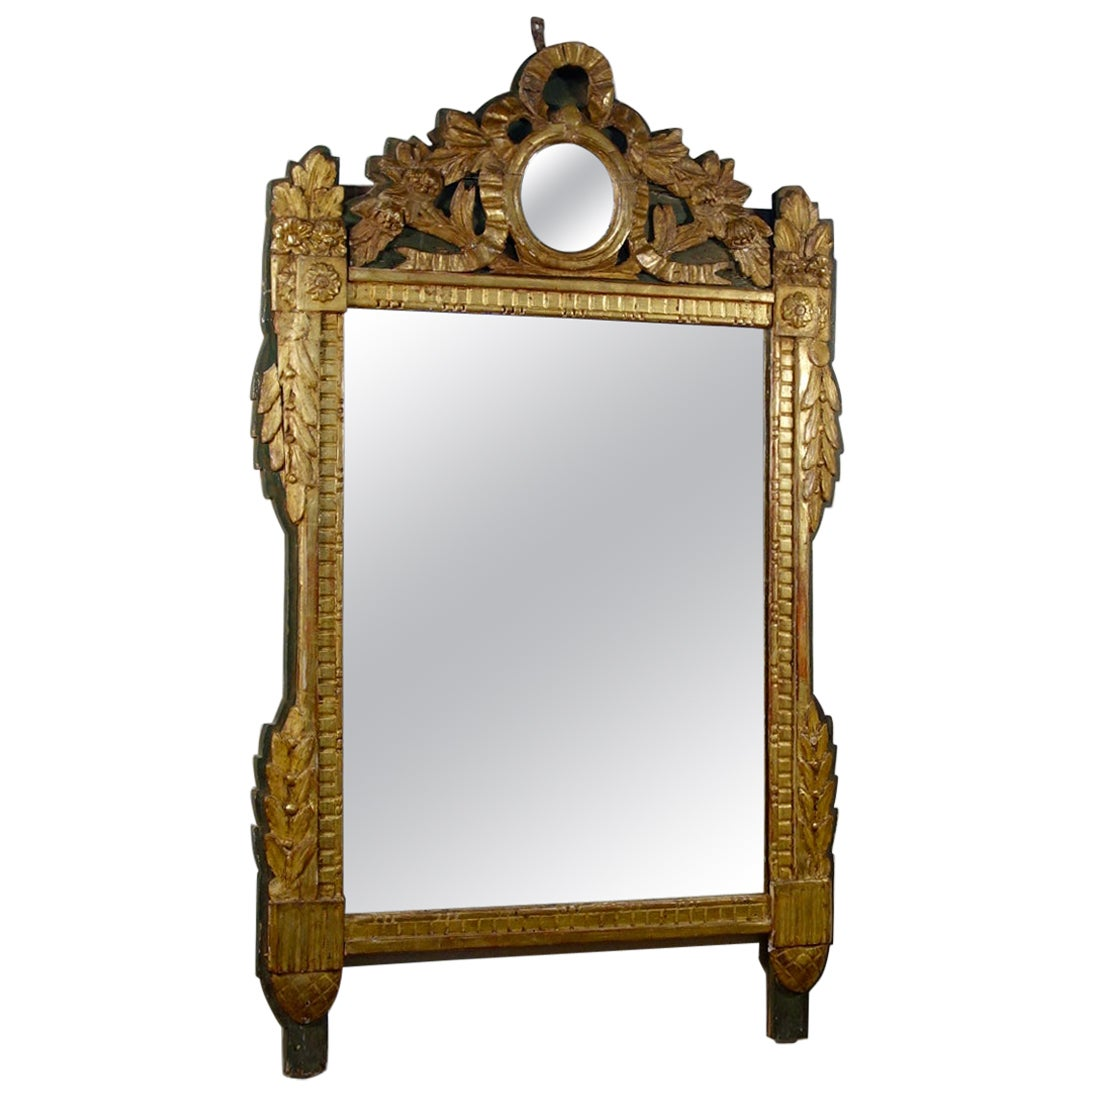 Large French late 18th Century Louis XVI Giltwood Wall Mirror, Overmantel